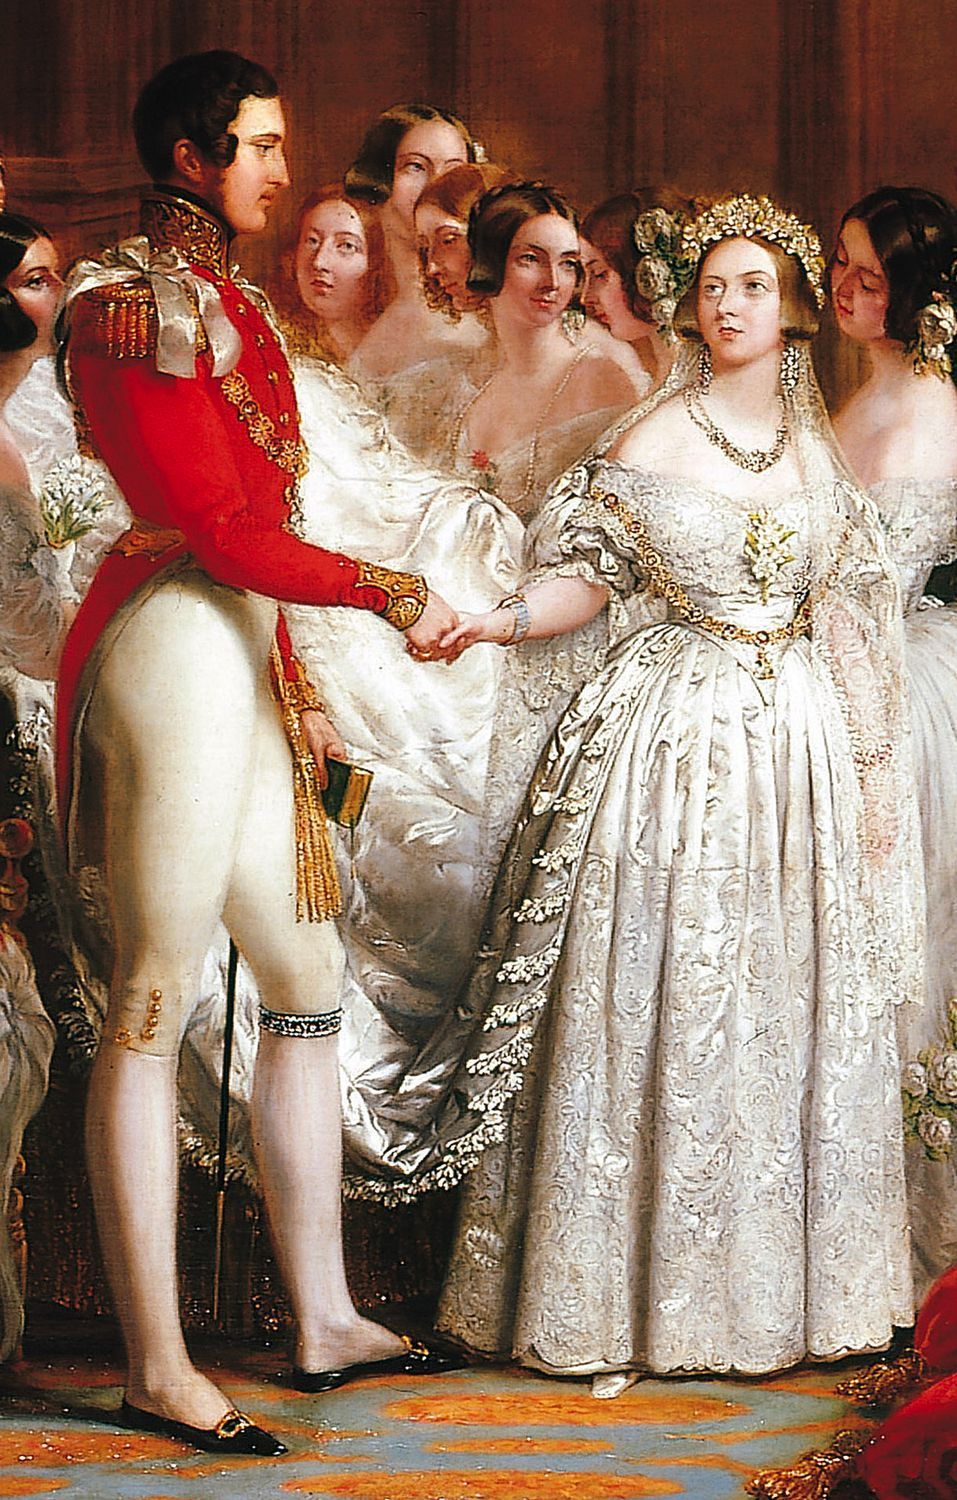 The Marriage of Queen Victoria, 10 February 1840 Royal